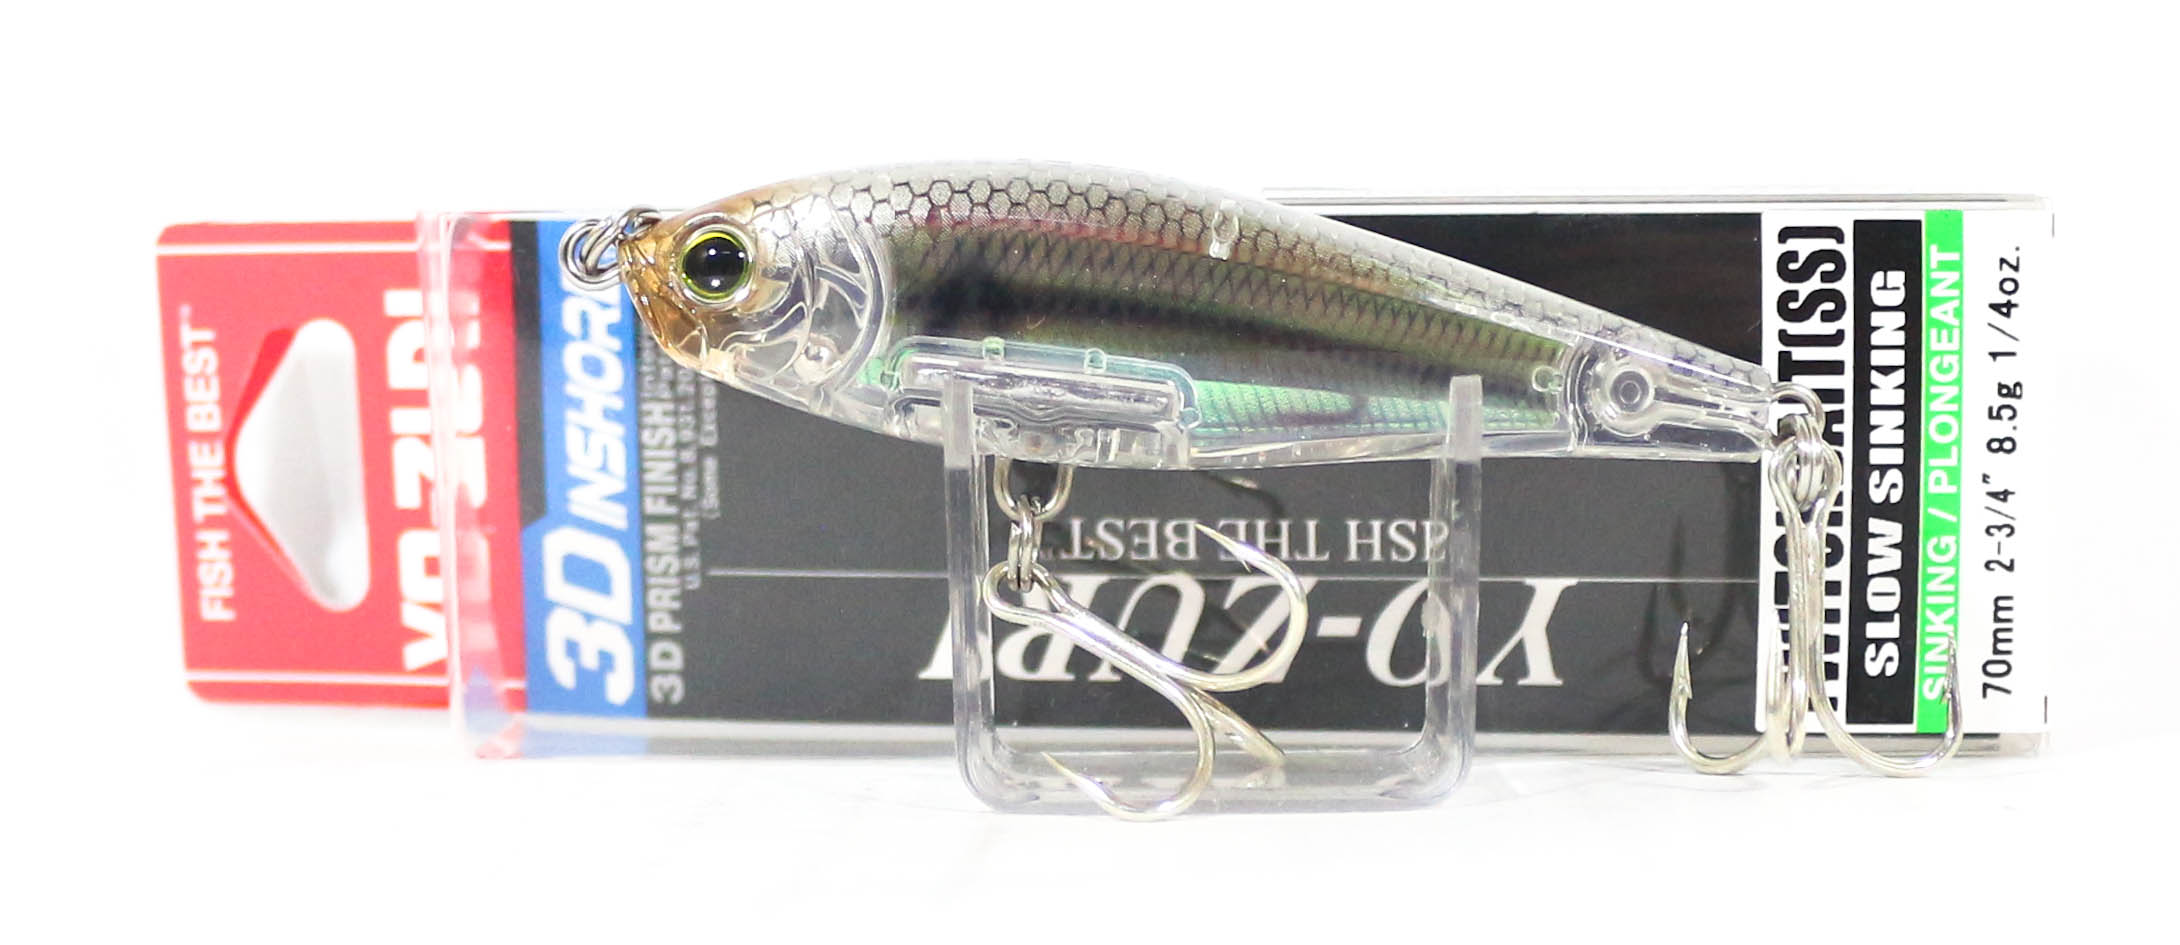 Yo Zuri Duel 3D Inshore Twitchbait 70SS Slow Sinking Lure R1207-RGLM (8291)